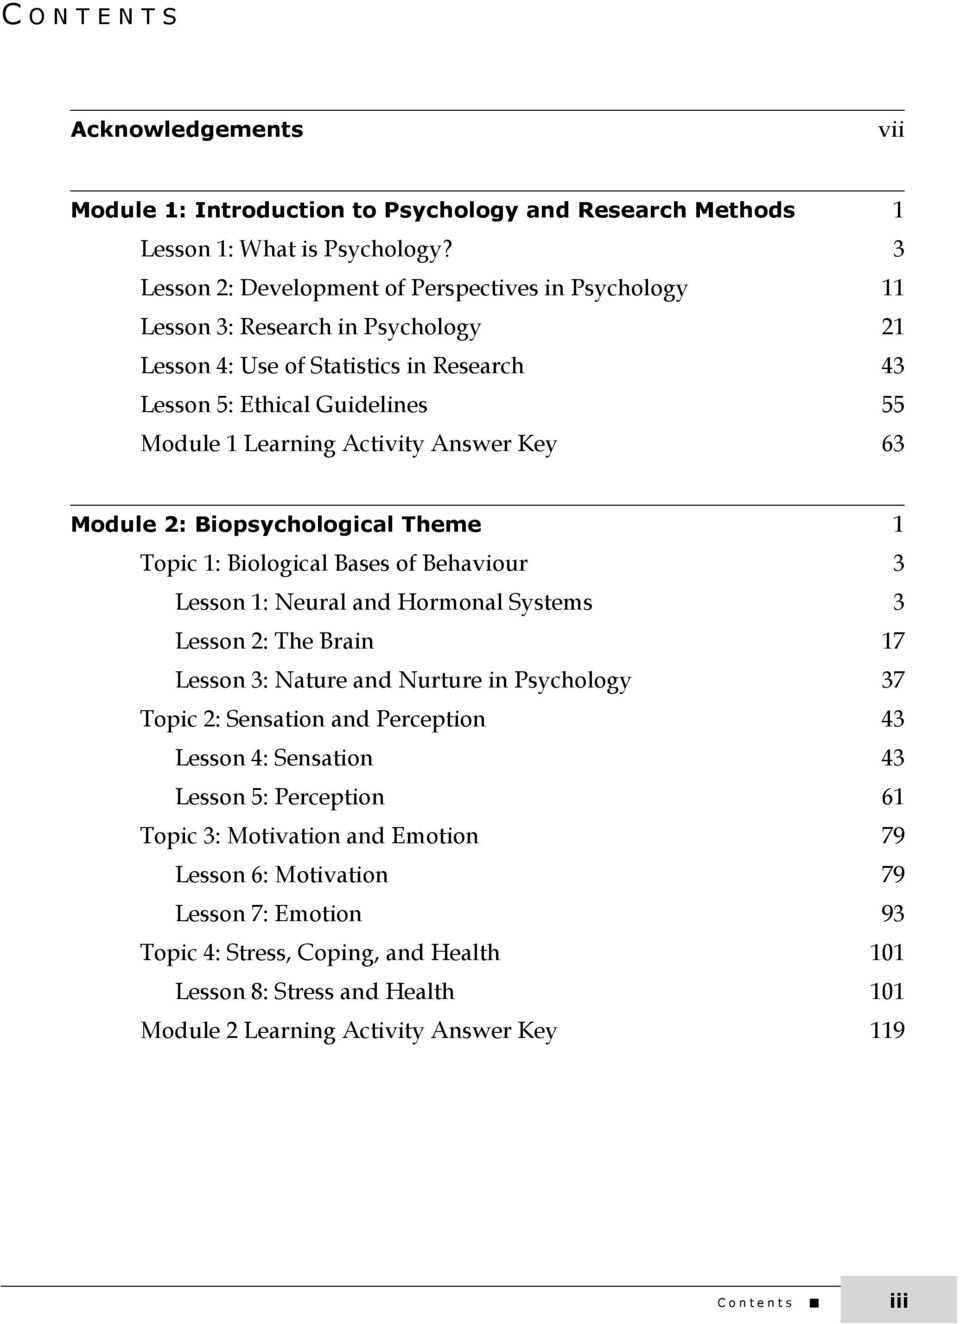 Answer Key 63 Module 2: Biopsychological Theme 1 Topic 1: Biological Bases of Behaviour 3 Lesson 1: Neural and Hormonal Systems 3 Lesson 2: The Brain 17 Lesson 3: Nature and Nurture in Psychology 37